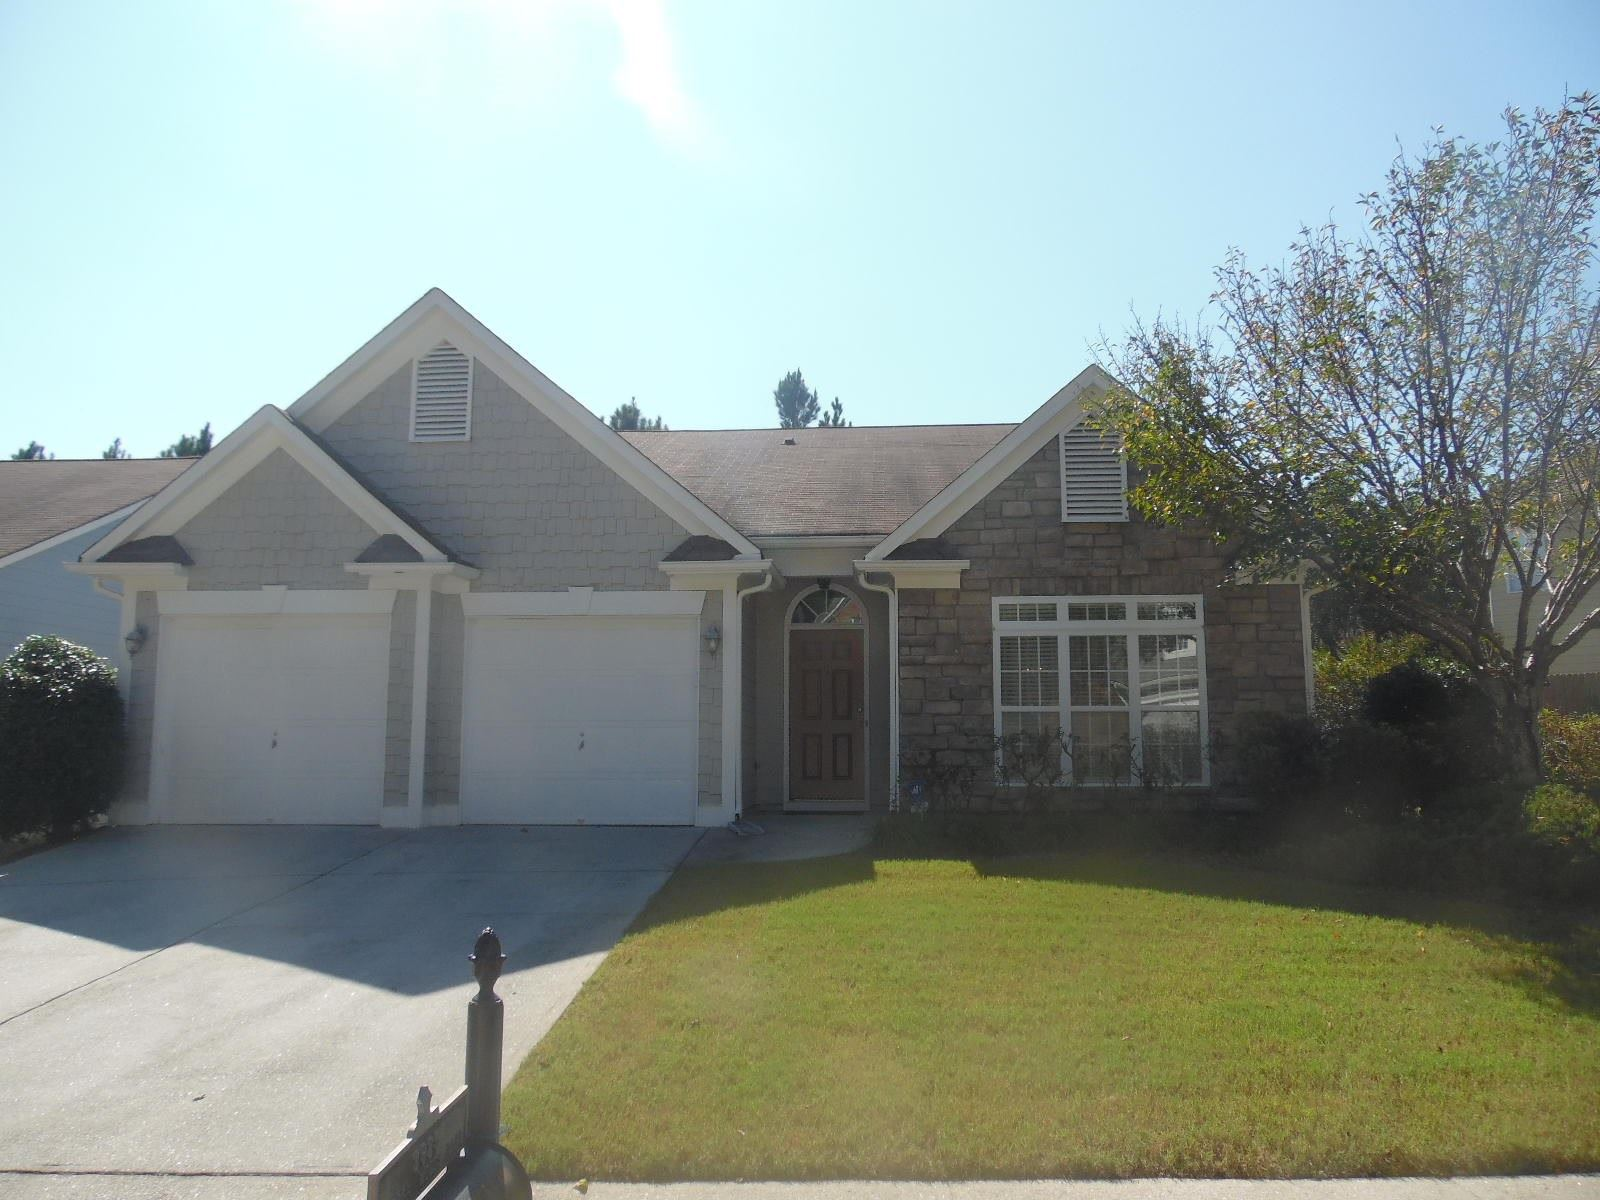 2925 Cooper Woods Ln, Stone Mountain, GA 30052 - MLS#: 8880985